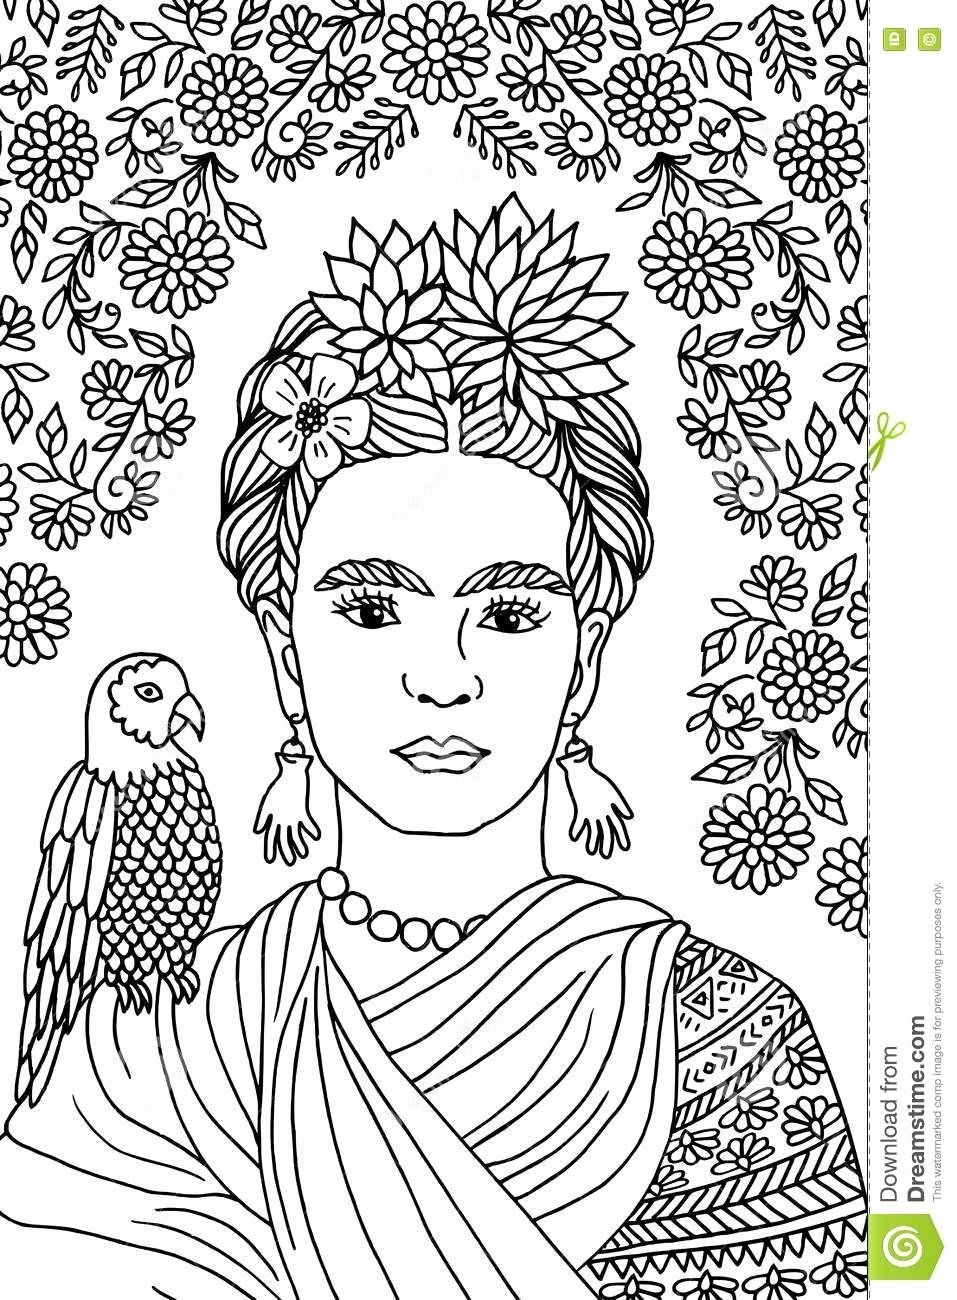 Frida Kahlo Coloring Page Luxury Related Image Frida Kahlo In 2019